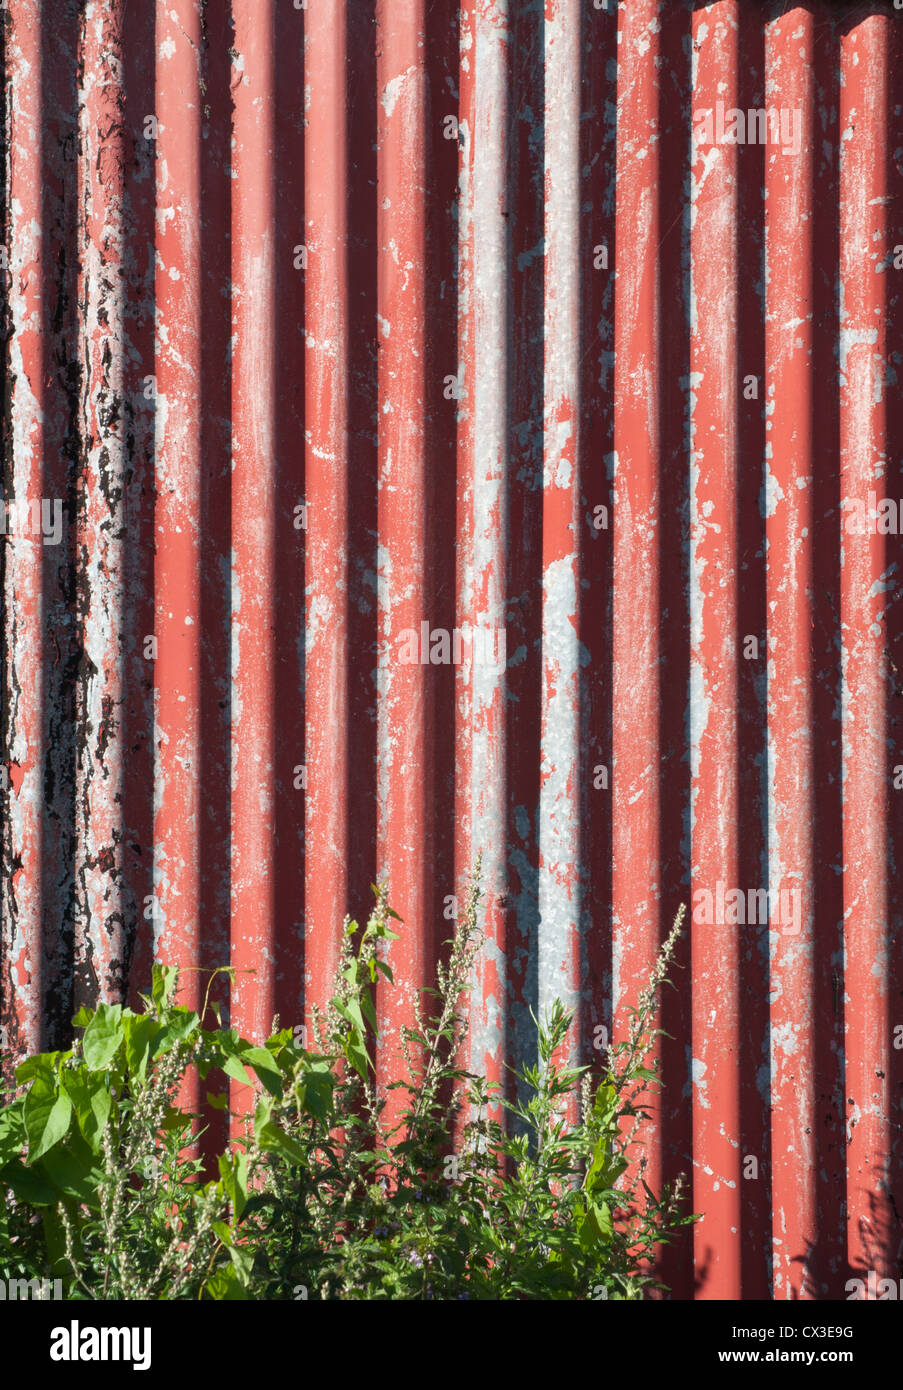 Corrugated Sheeting Stock Photos Amp Corrugated Sheeting